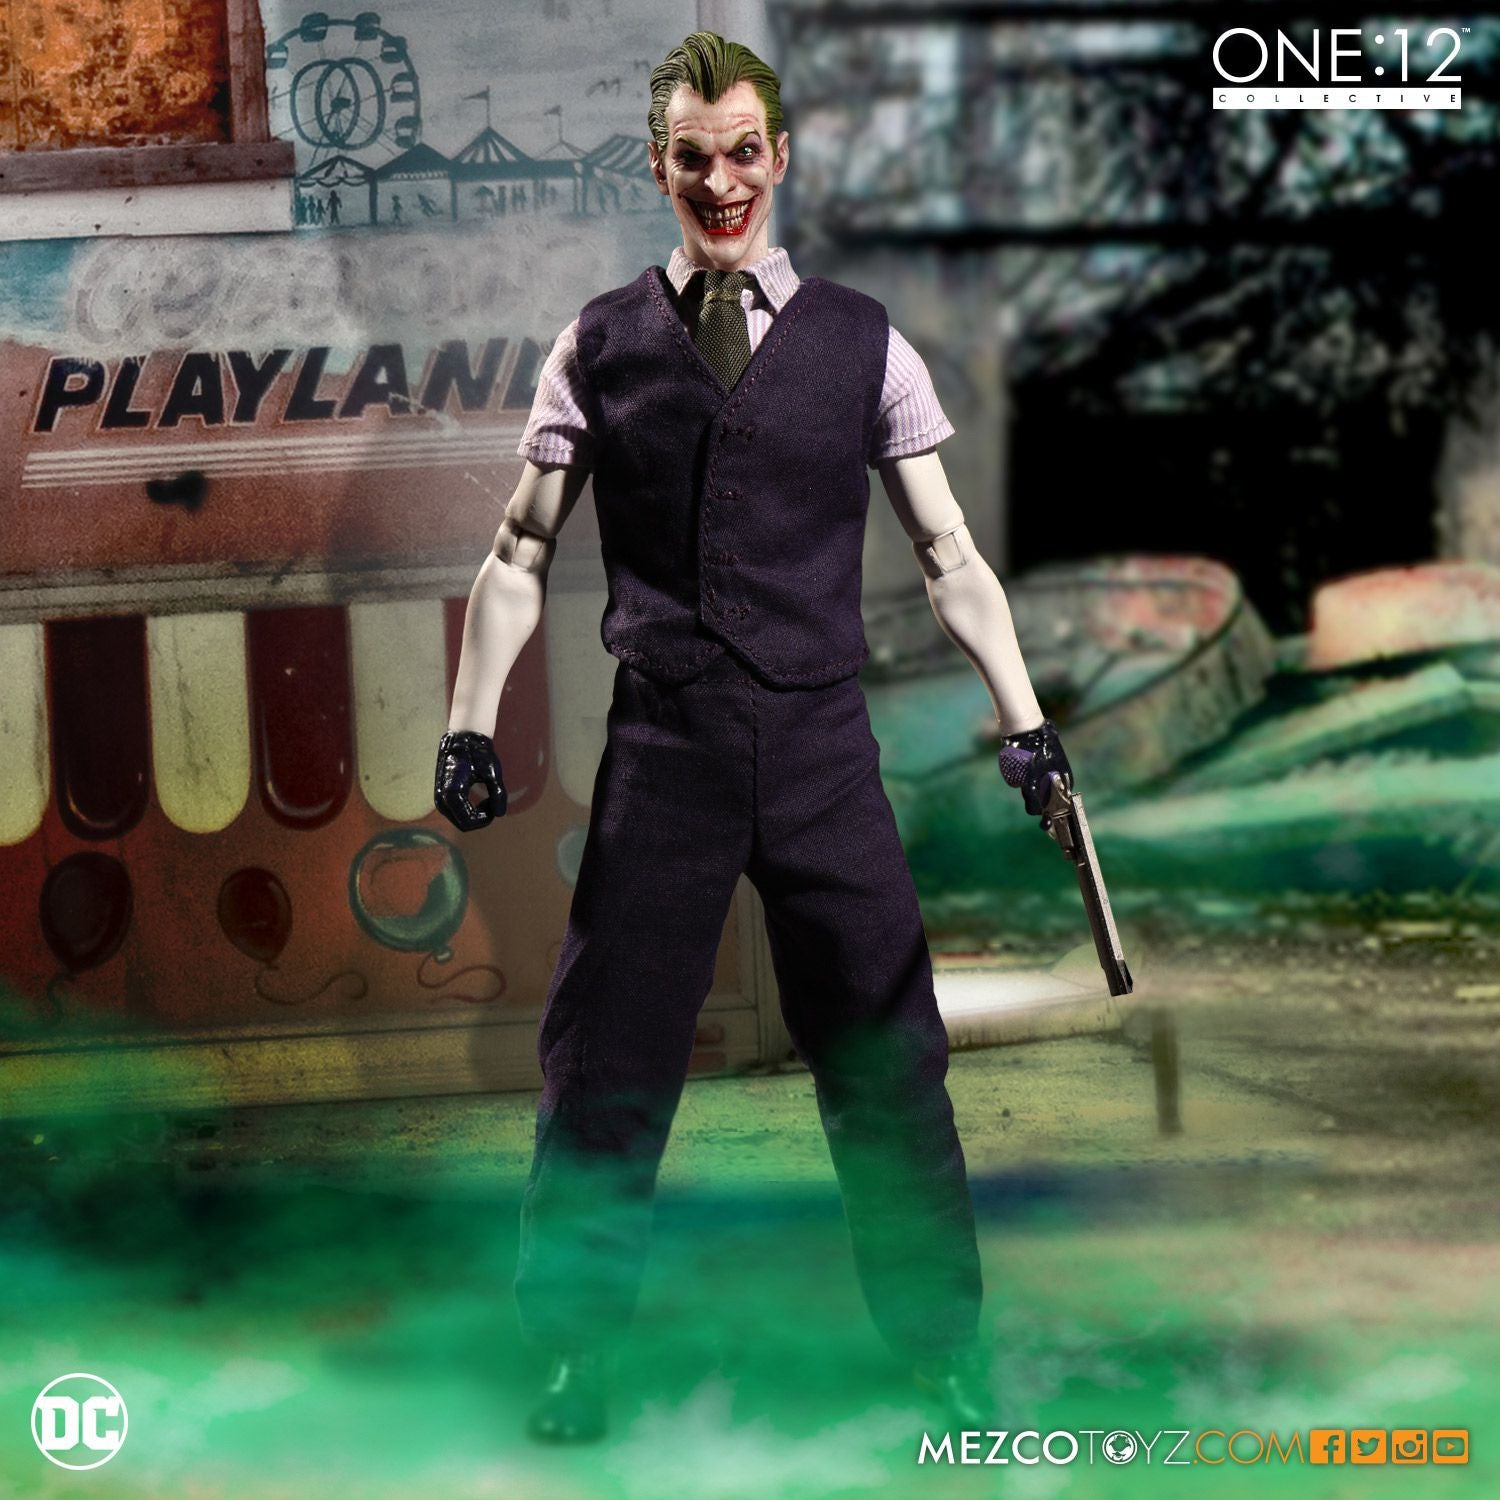 Mezco - One:12 Collective - The Joker - Marvelous Toys - 6